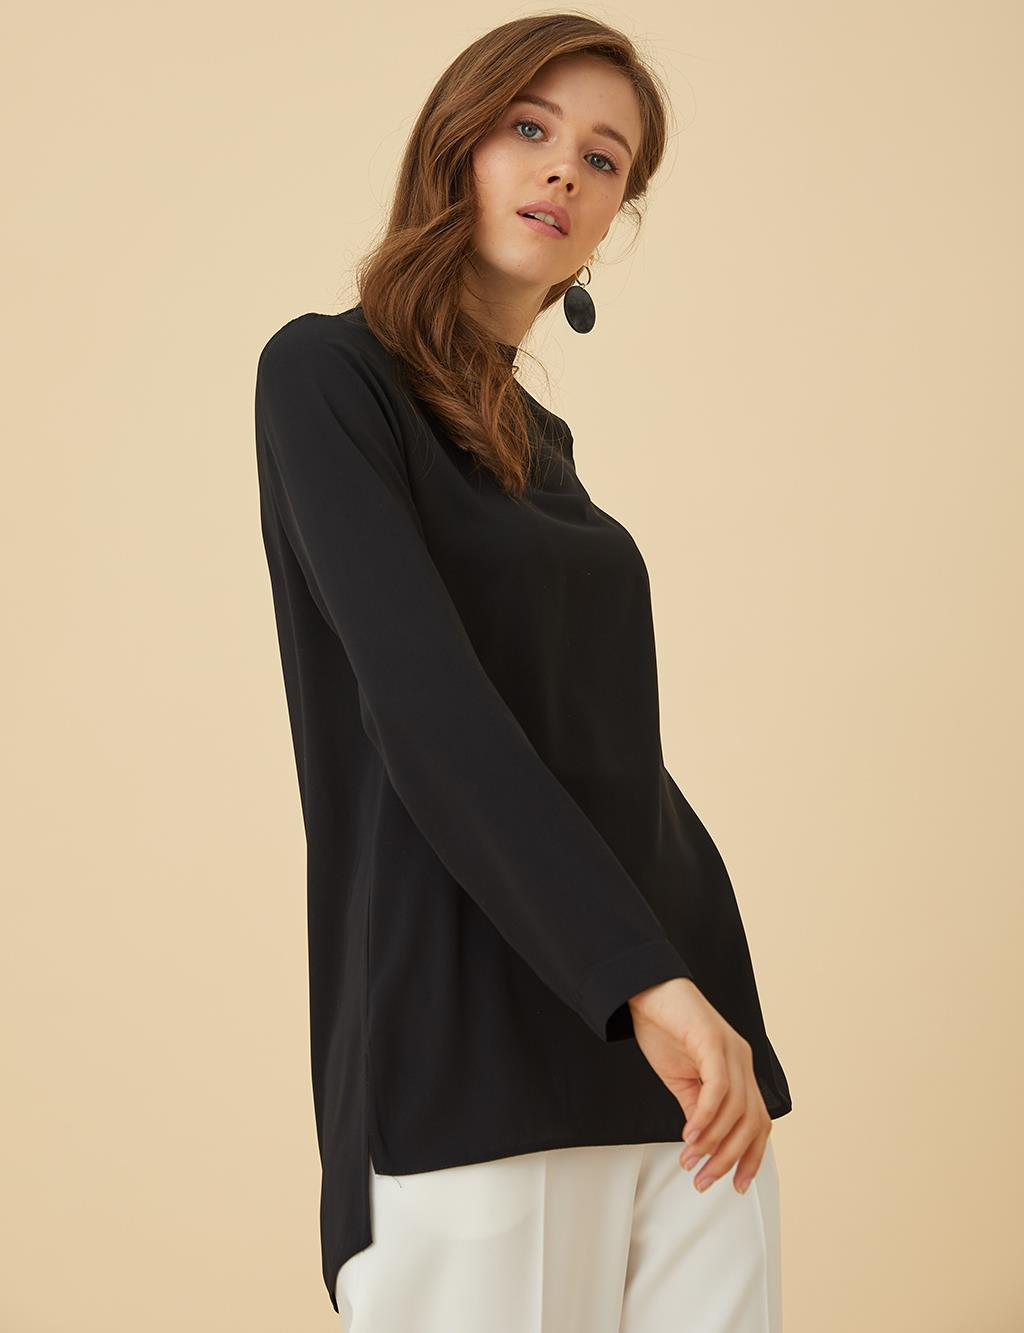 Basic Blouse SZ-10500 Black